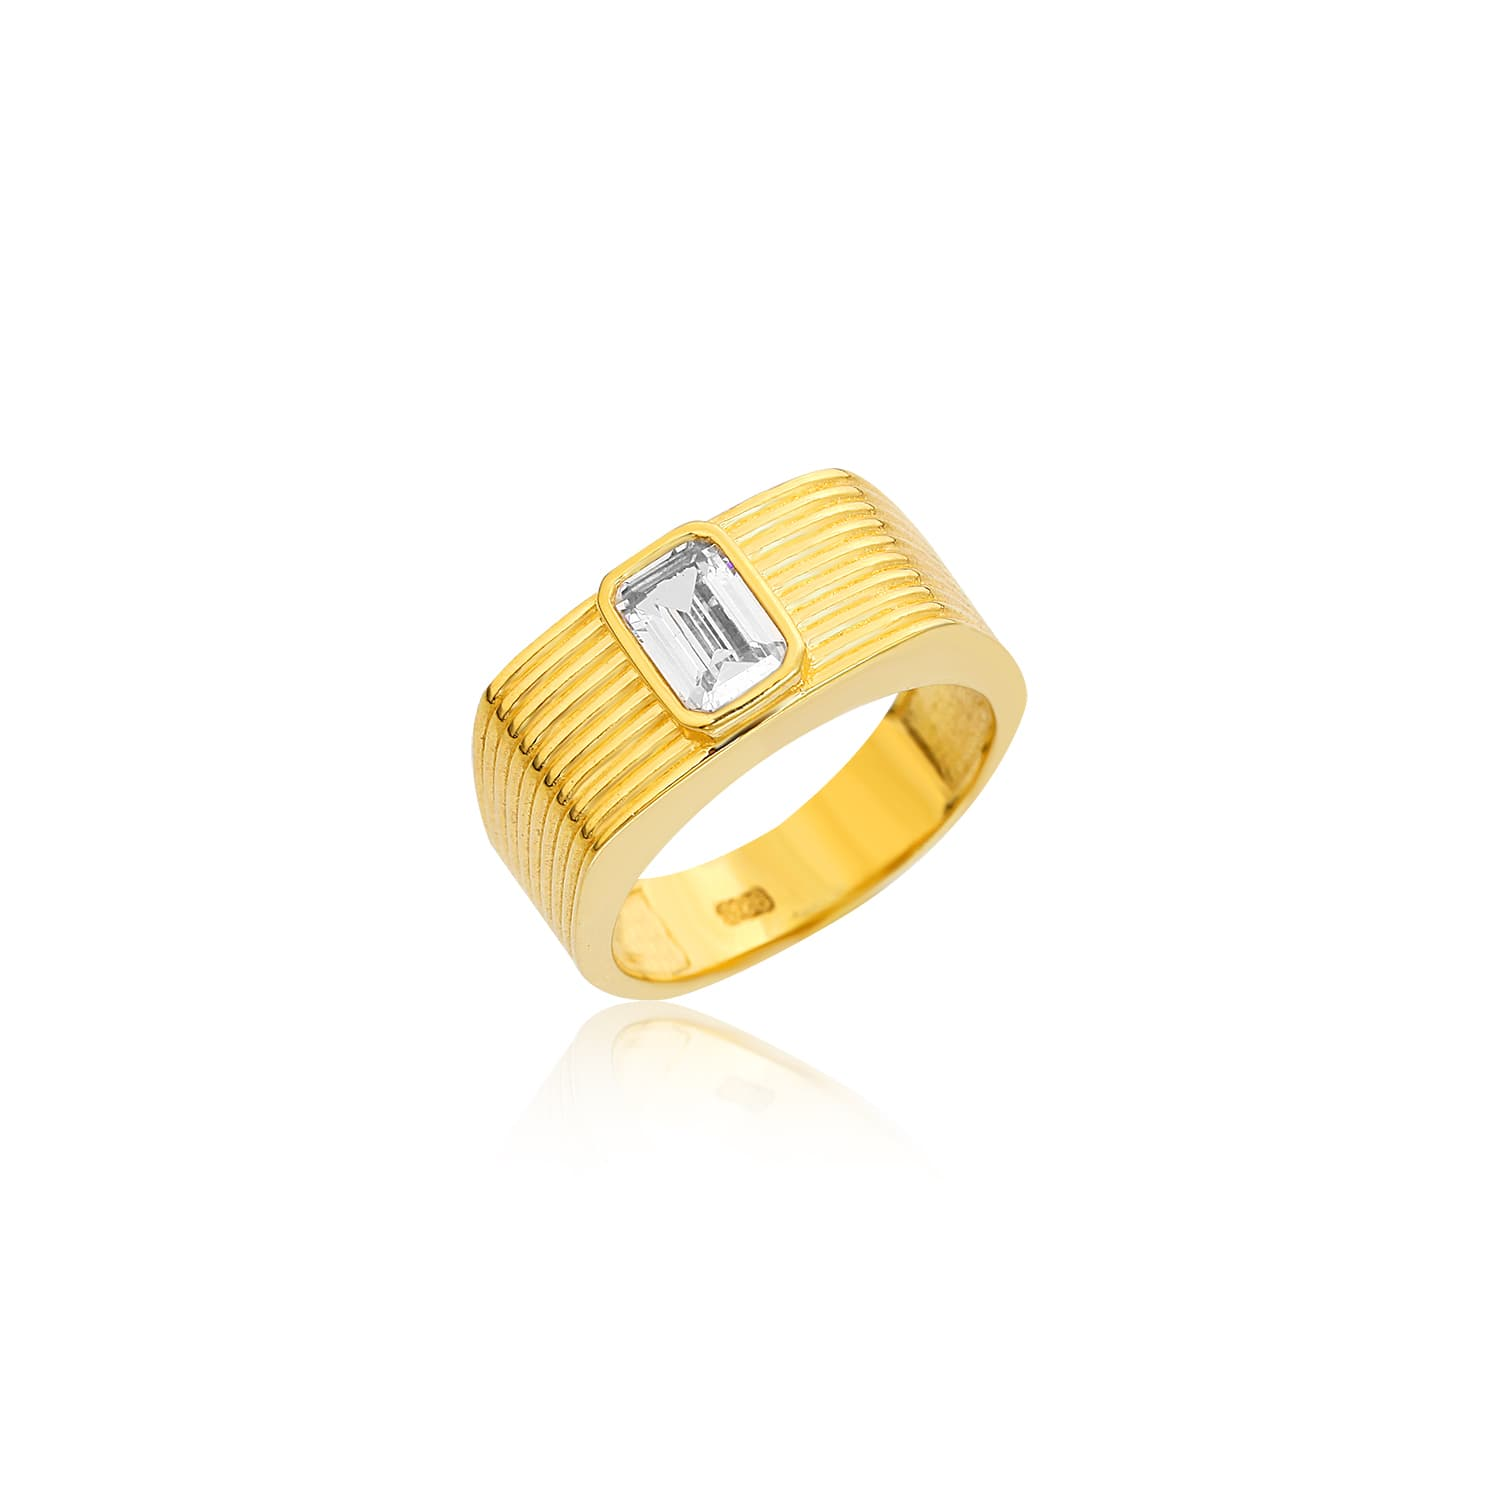 24 carat gold plated stone ring on silver